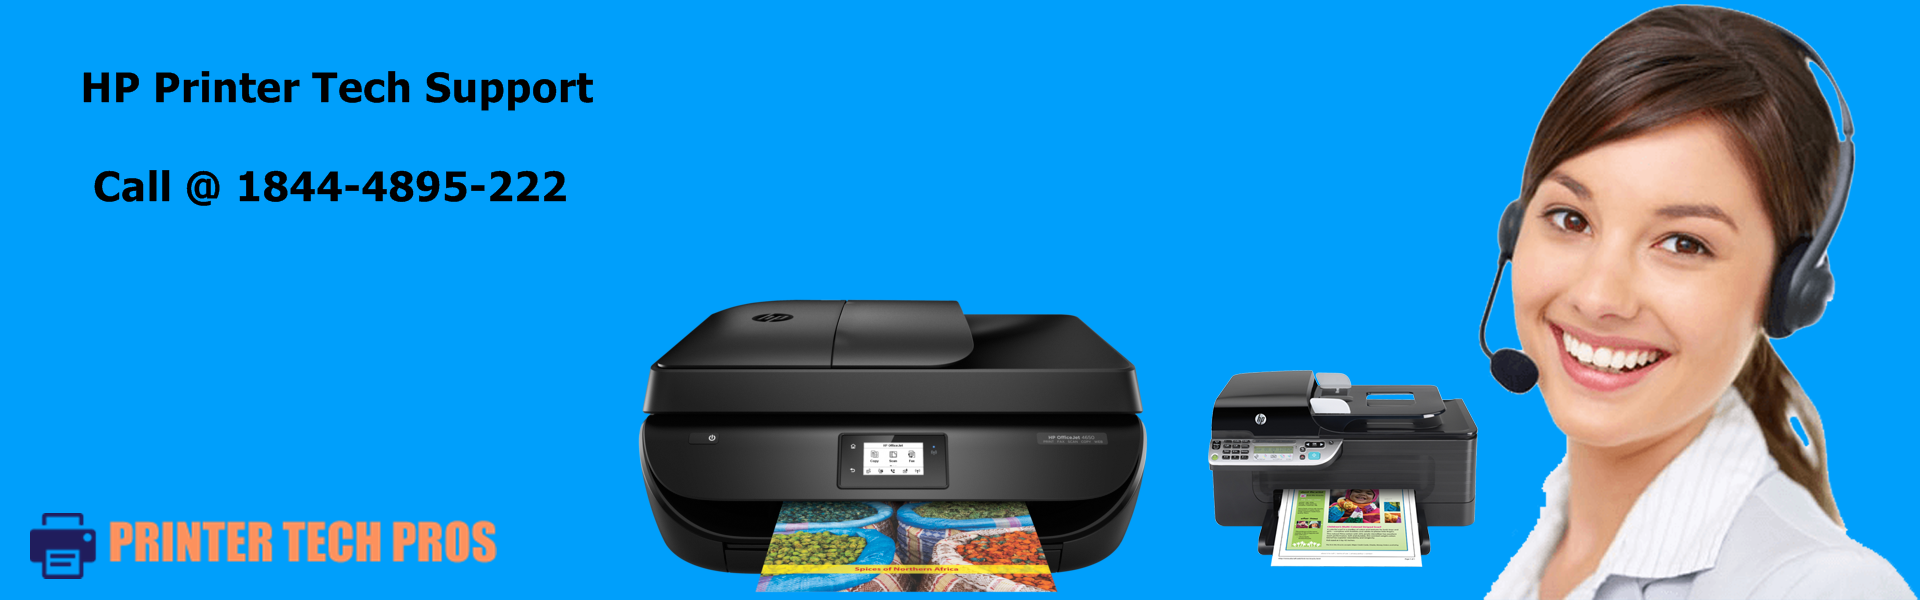 Get HP Printer Tech Support and Customer Service in USA